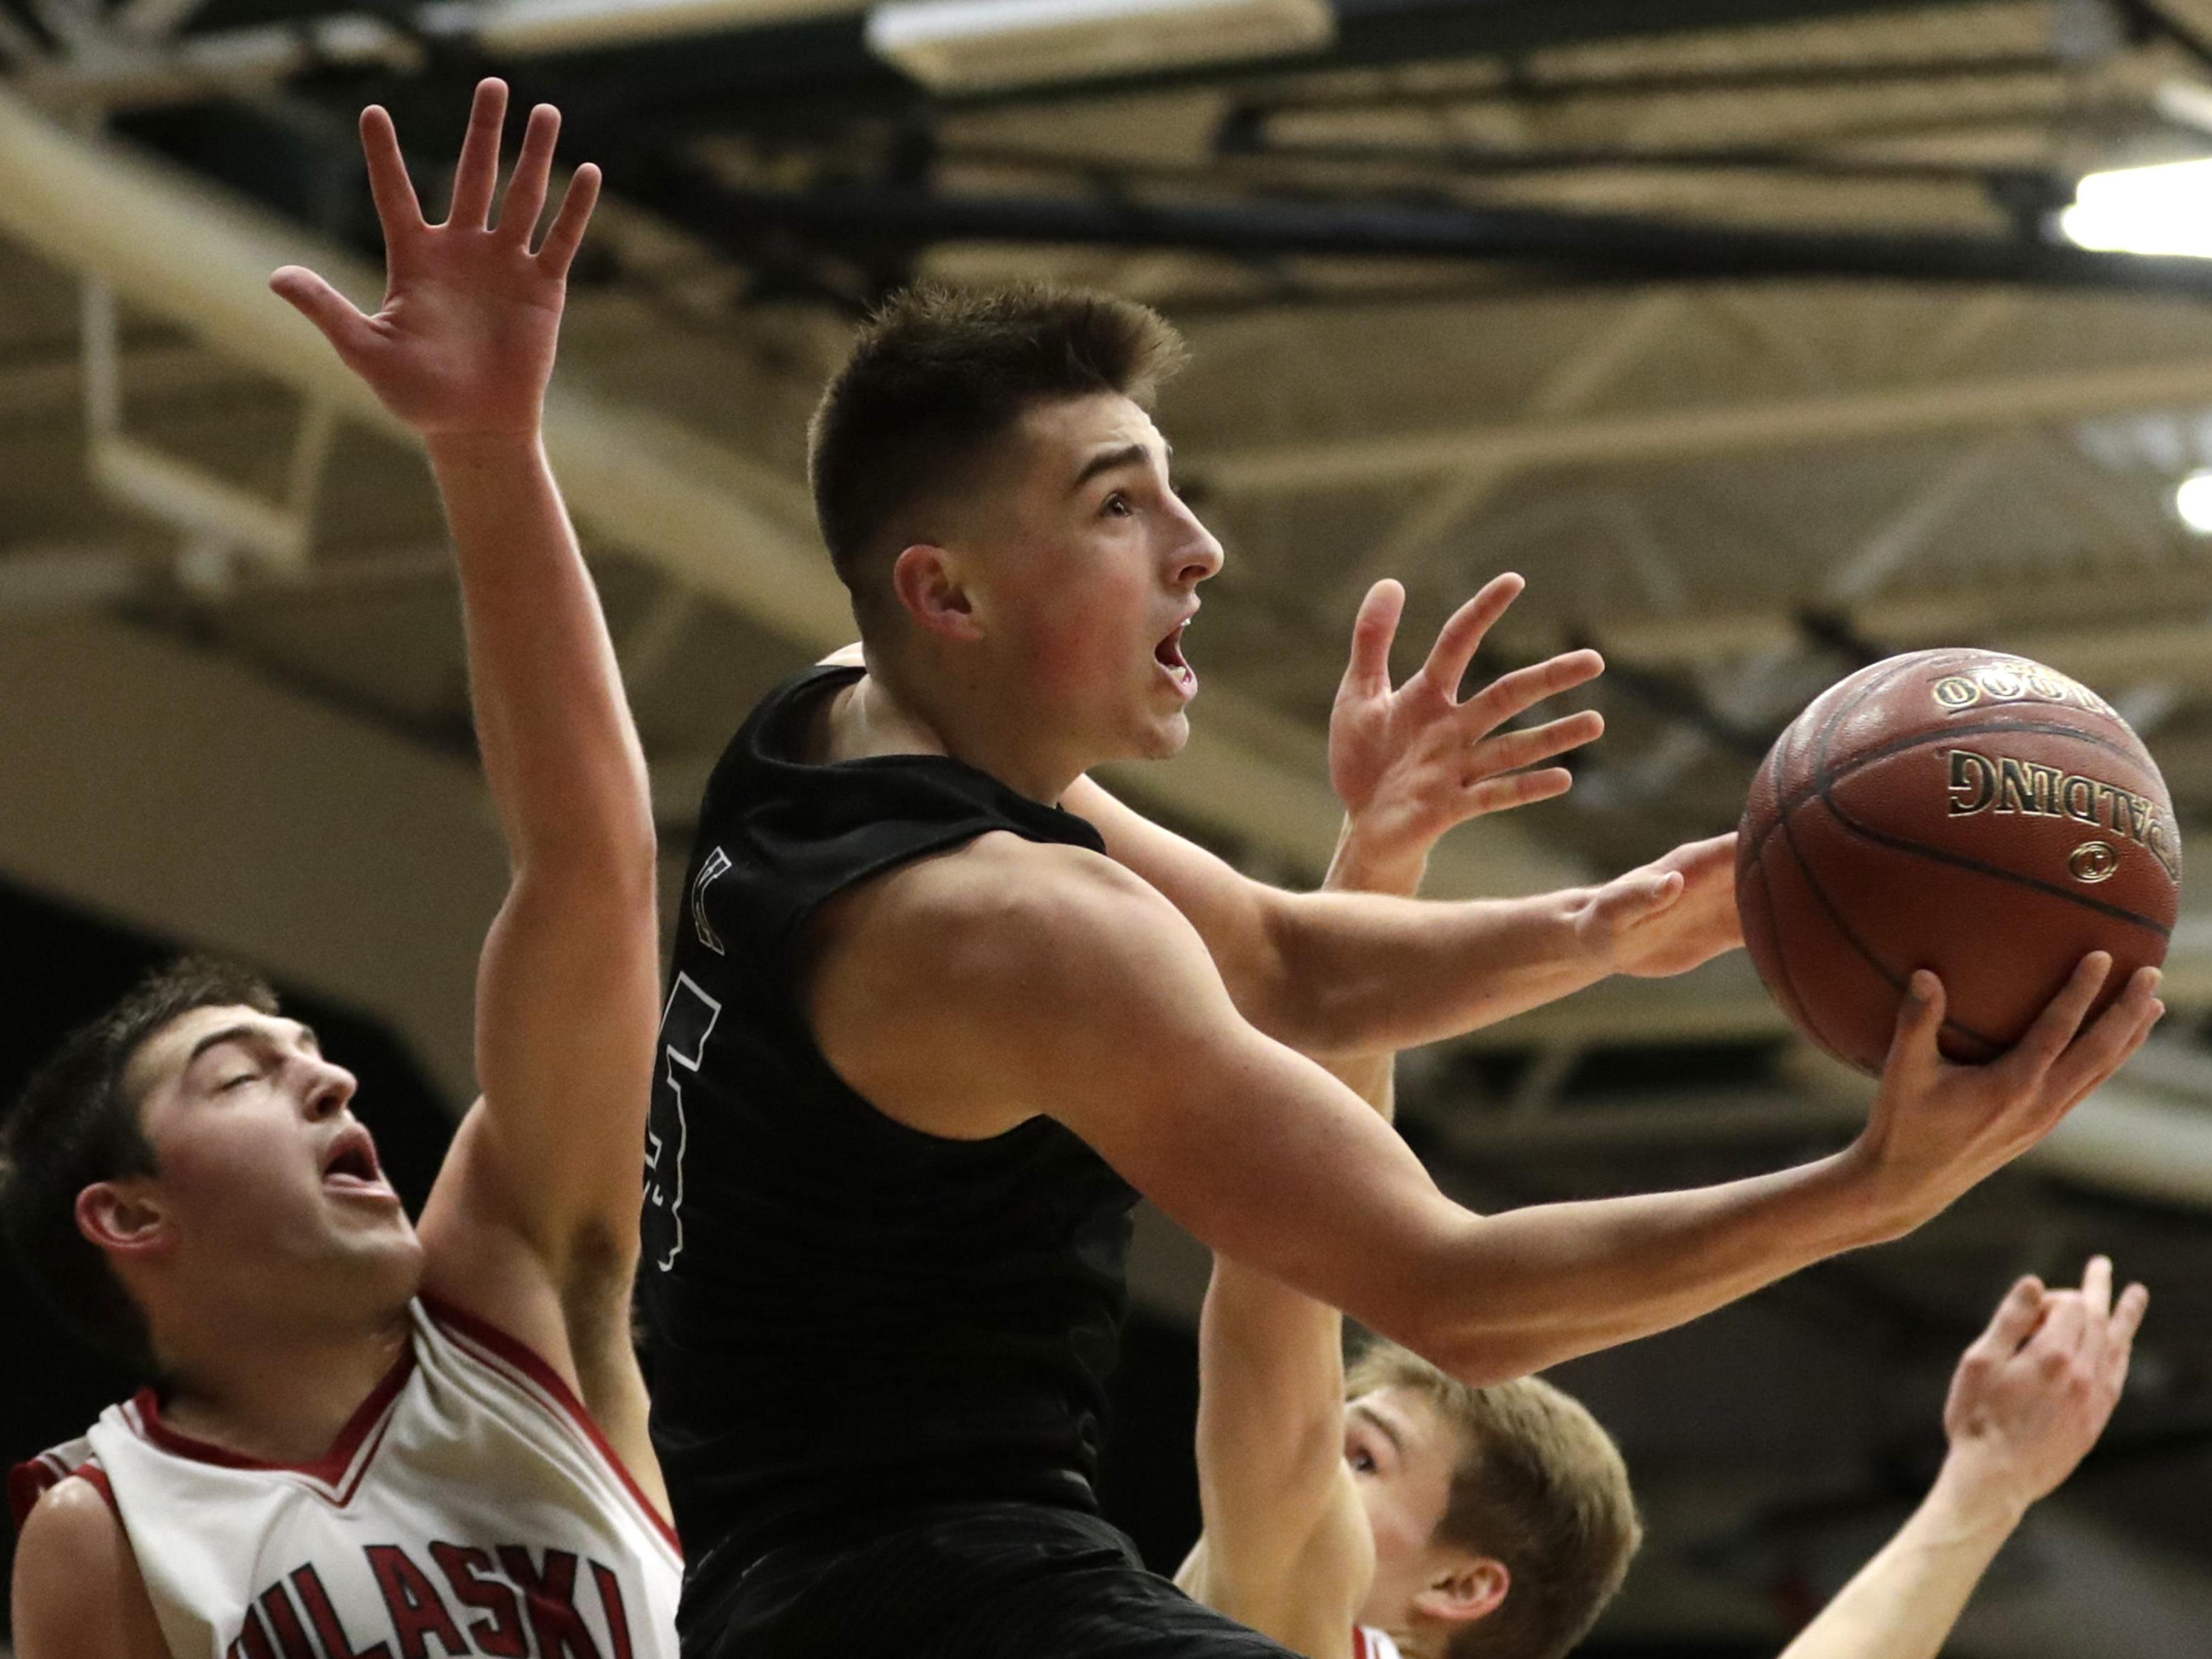 Kaukauna junior Jordan McCabe goes for a layup against Pulaski during their WIAA Division 2 sectional semifinal game Thursday at Ashwaubenon High School. McCabe finished with a game-high 32 points to lead the Galloping Ghosts to the win.